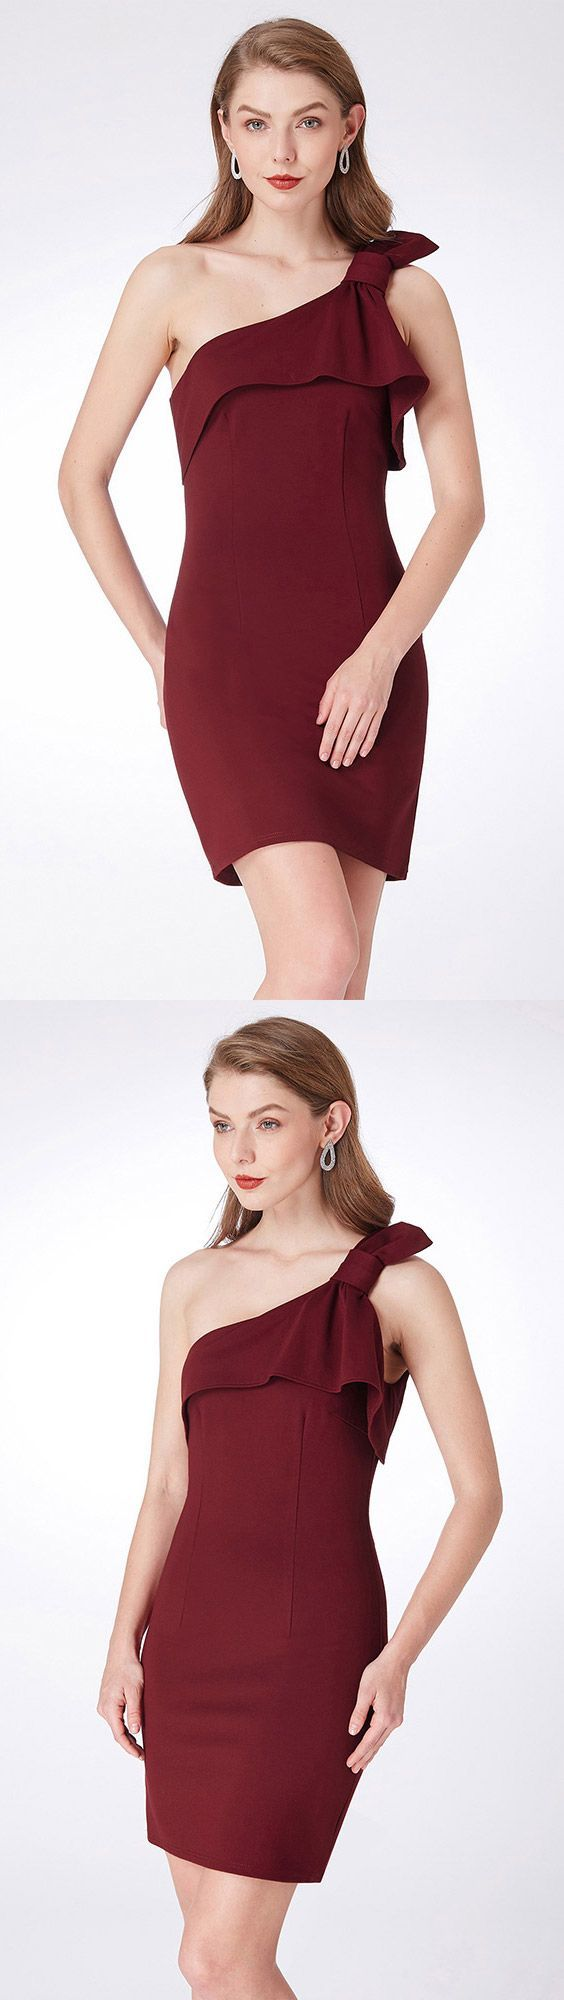 $49 Simple One Shoulder Burgundy Cocktail Dress For Party #EP04020BD – GemGrace.com